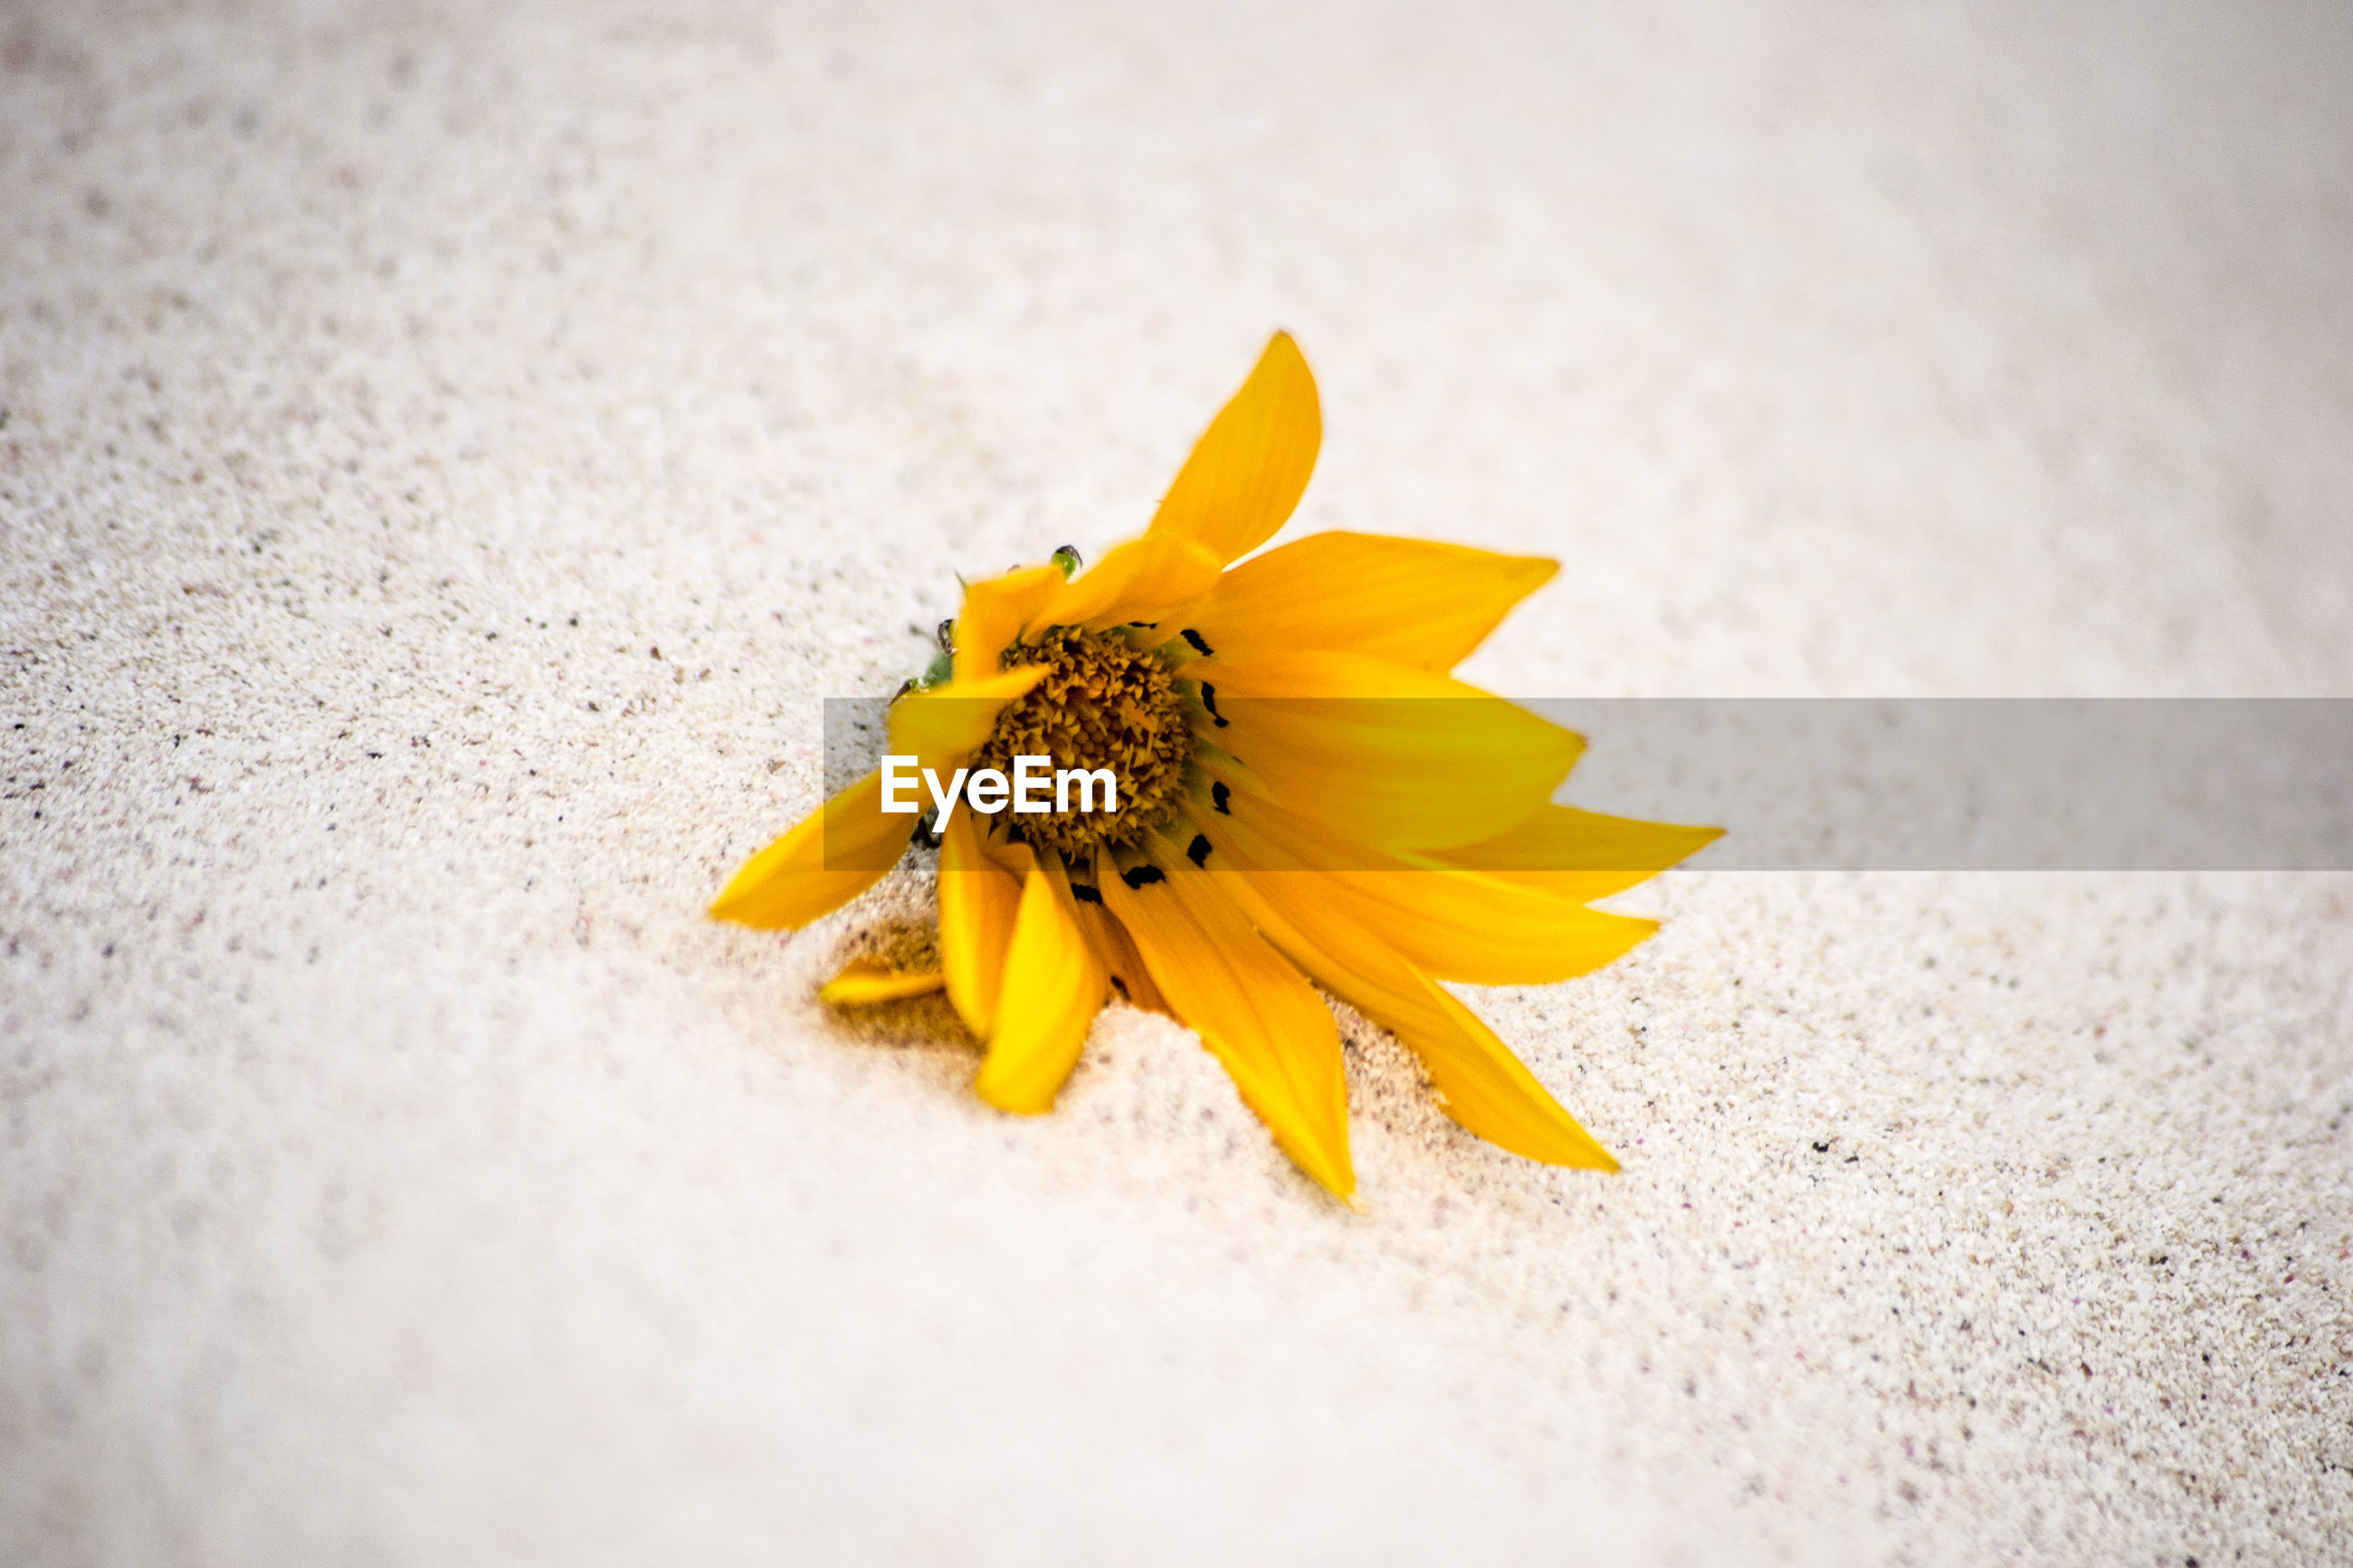 CLOSE-UP OF YELLOW FLOWER ON WHITE SURFACE